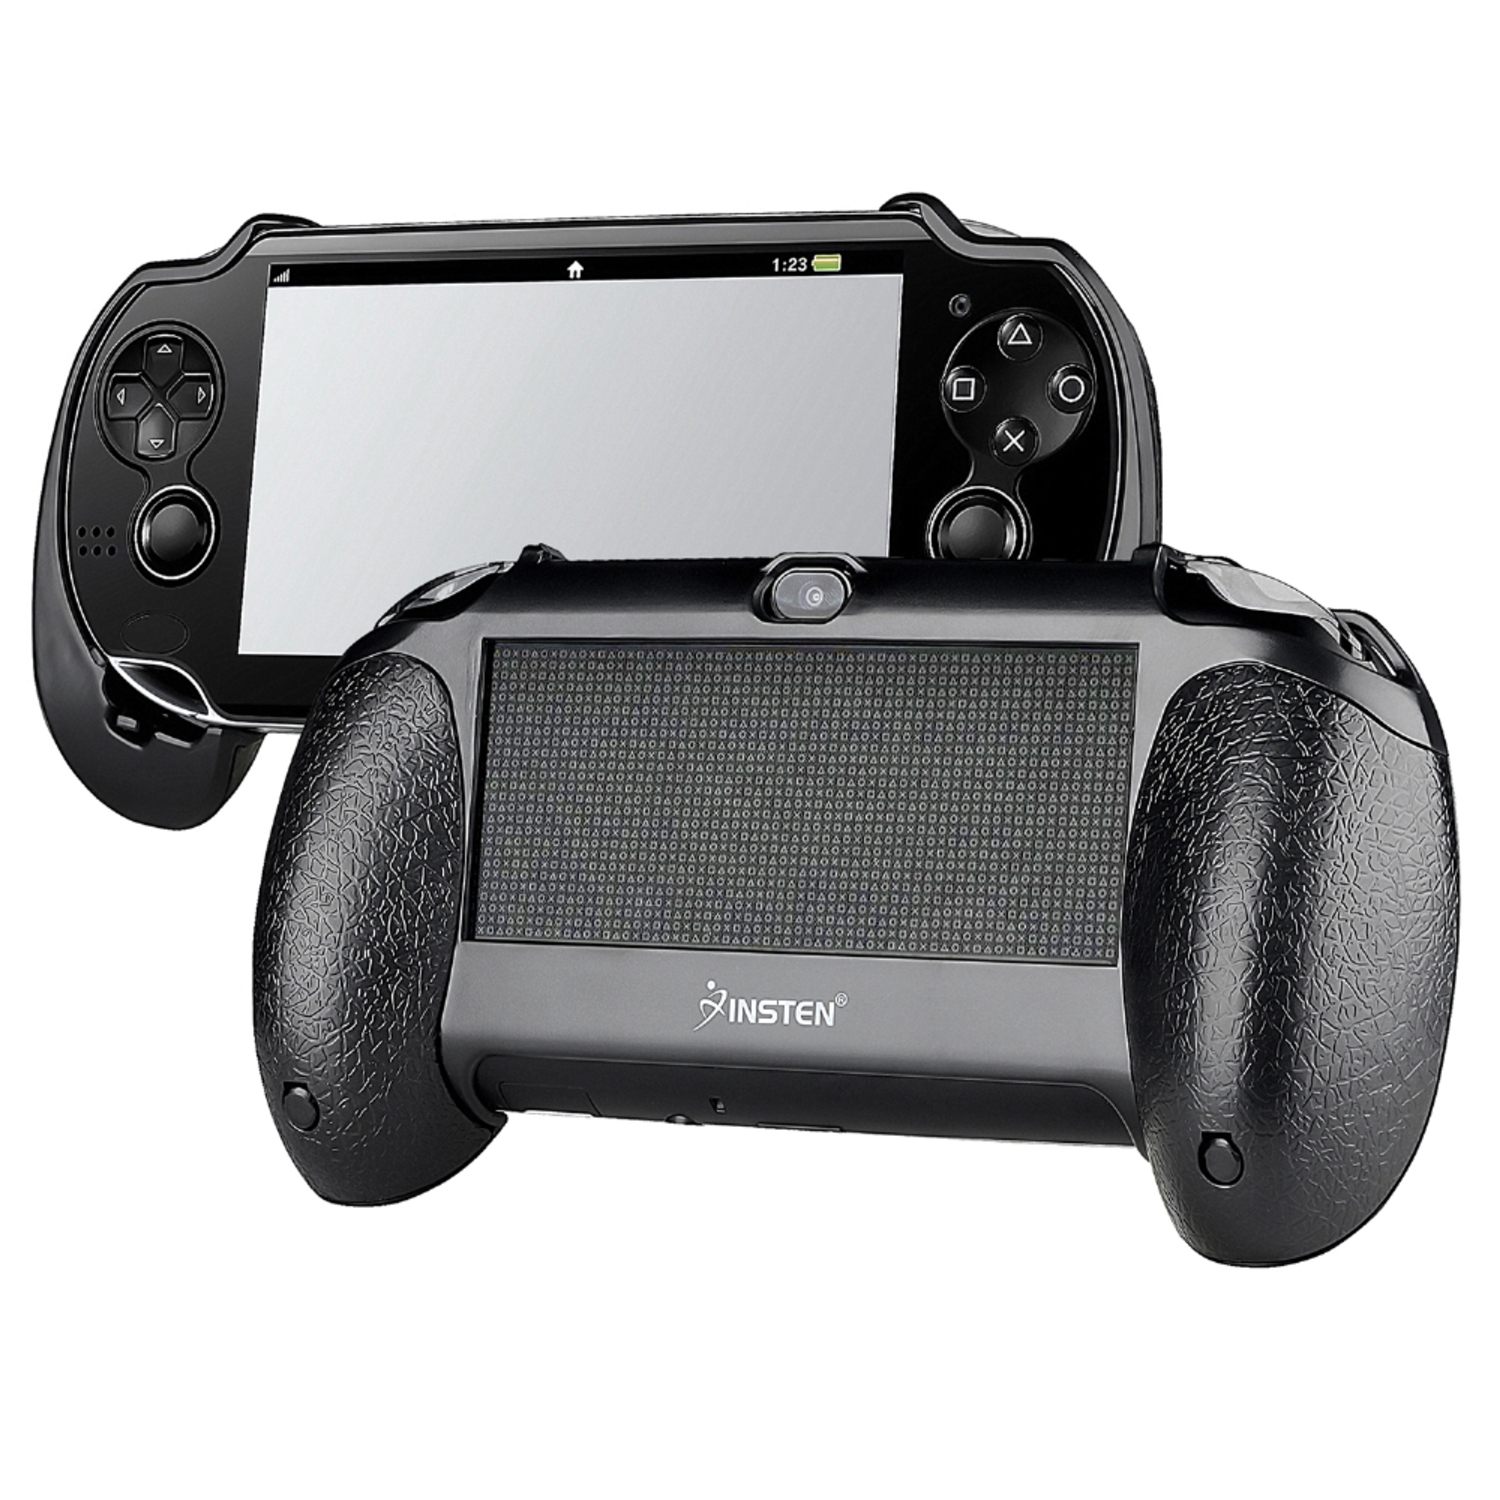 Insten For Sony PS Vita PSV Black Bracket Joypad Hand Grip Holder Handle